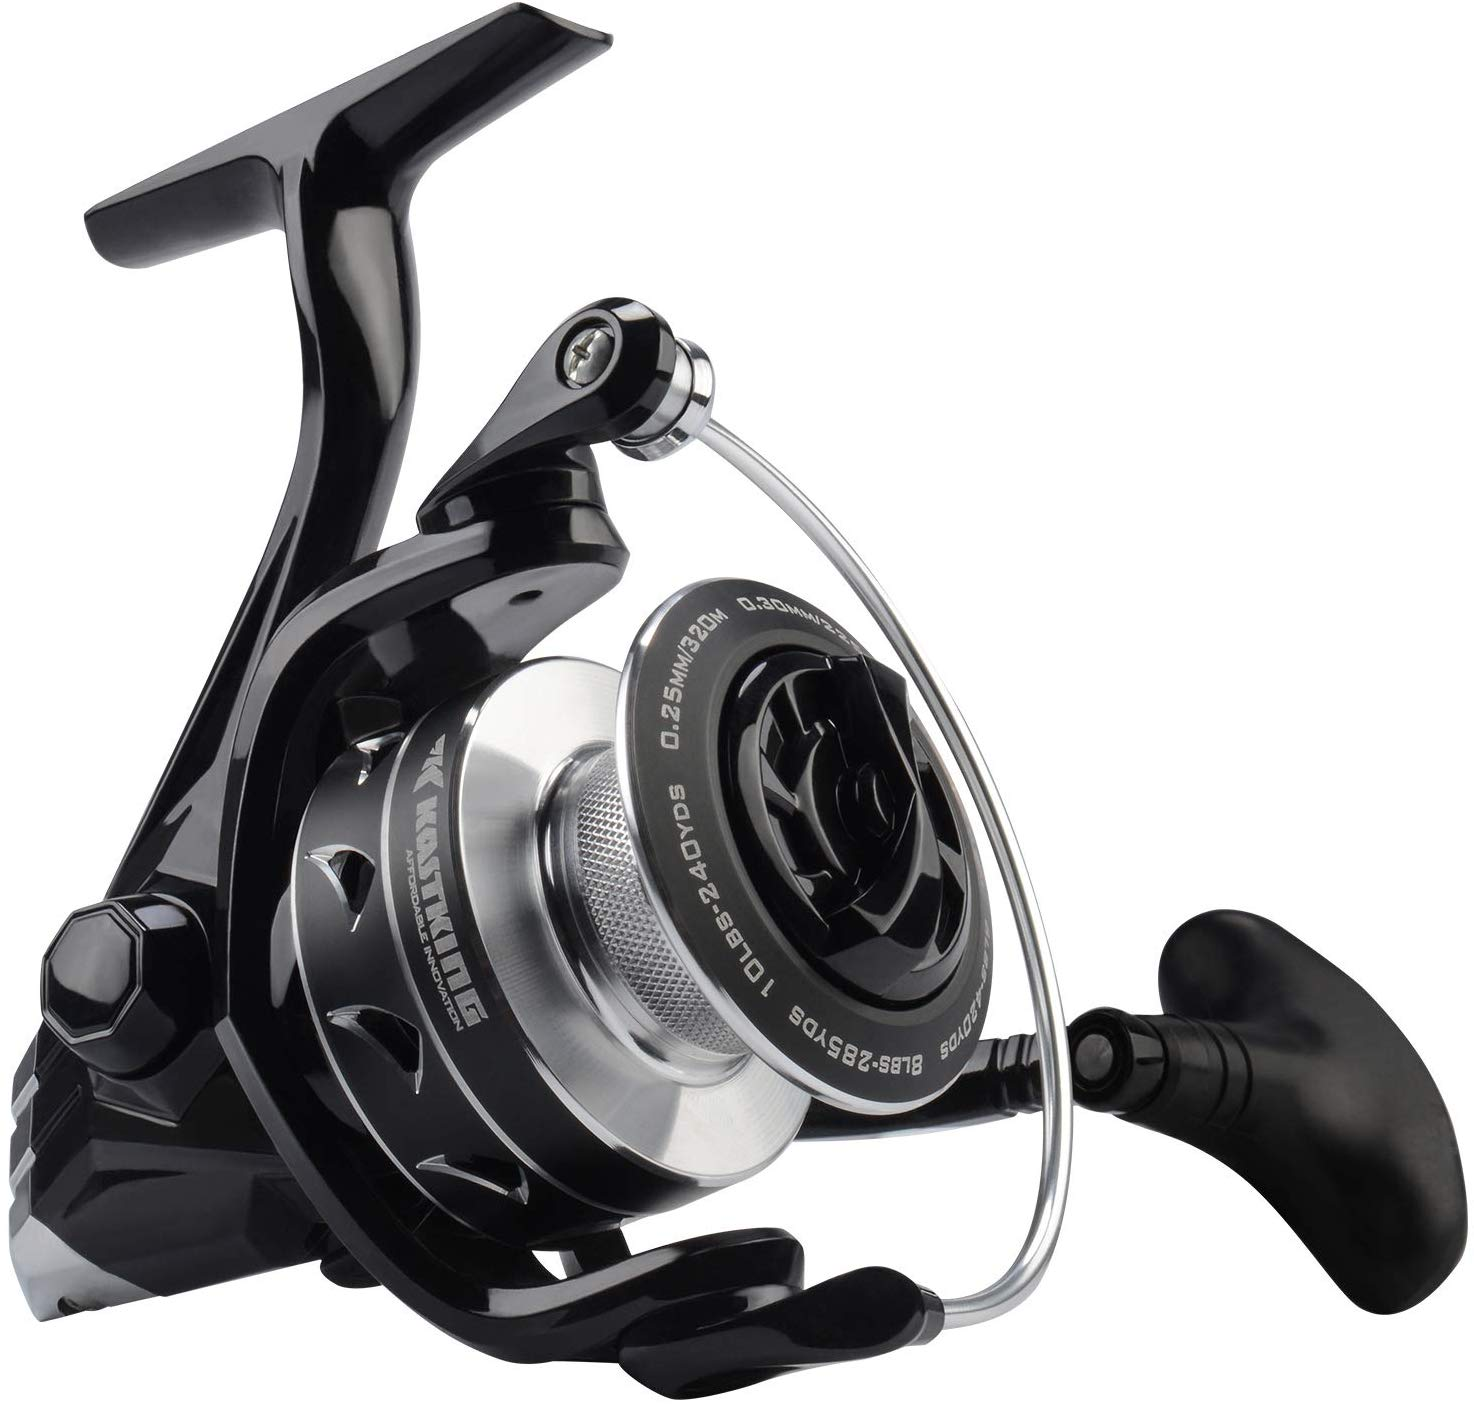 KastKing-Valiant-Eagle-Spinning-Reel